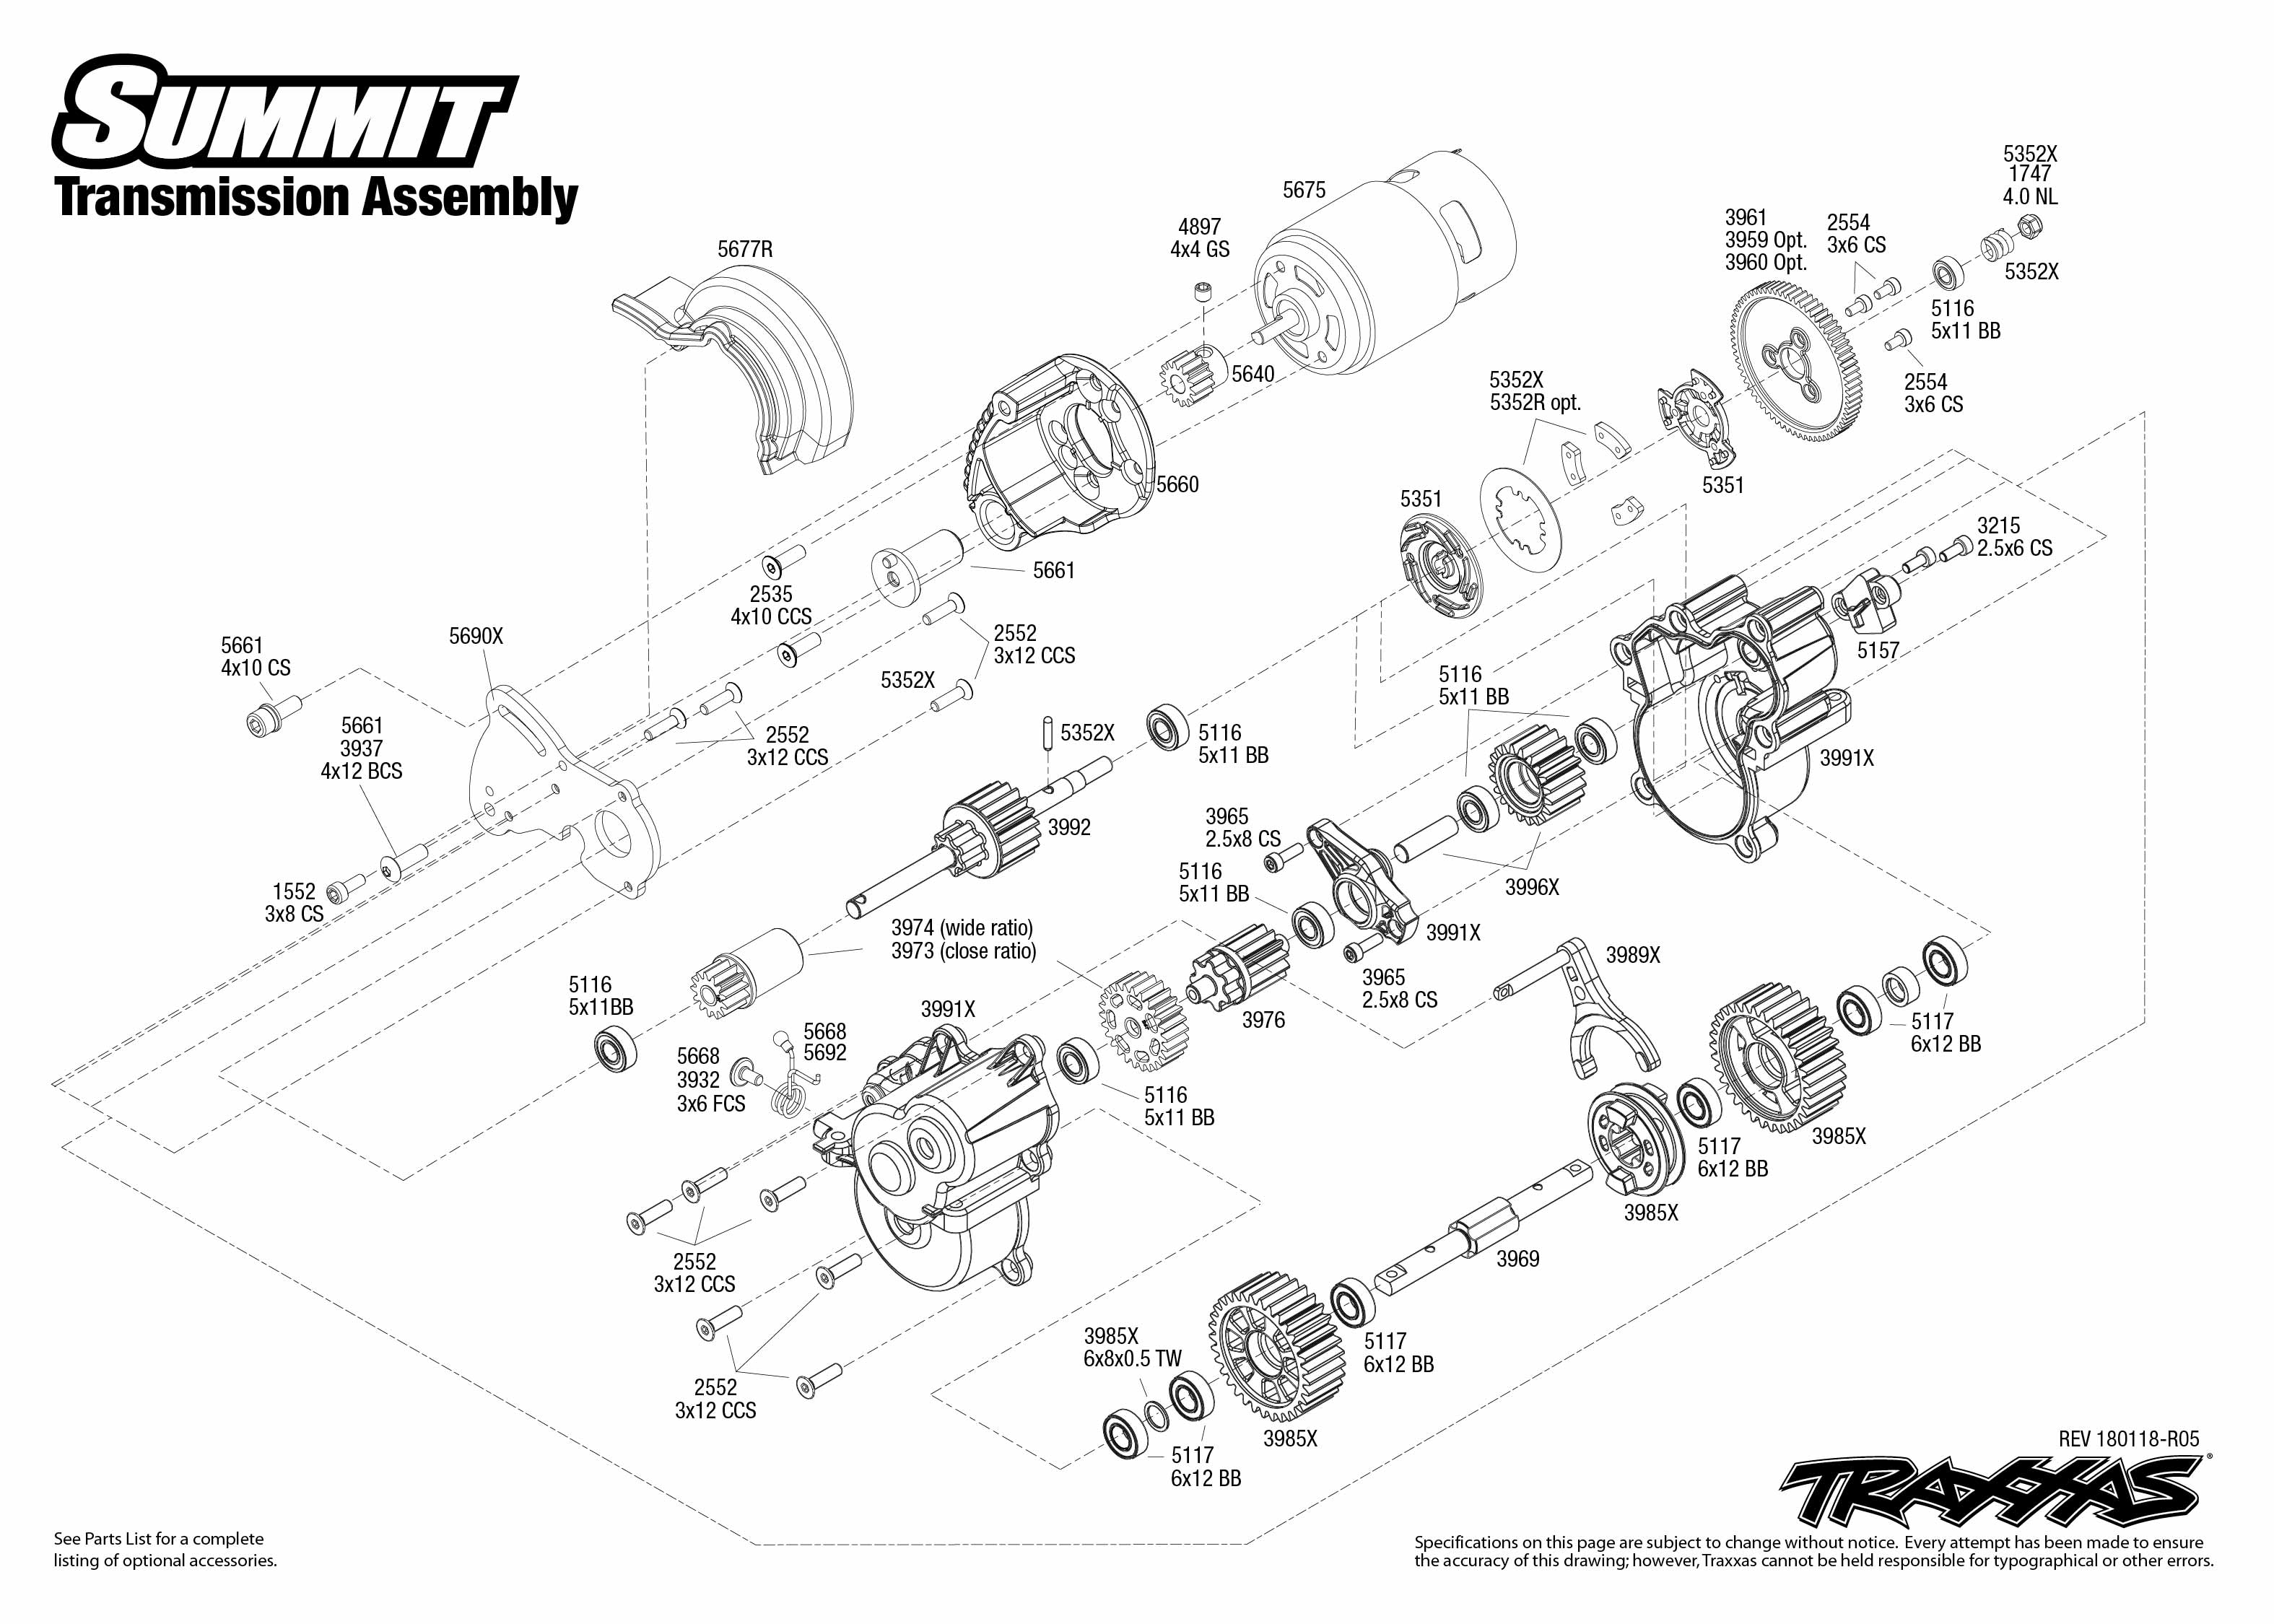 Summit 4 Transmission Assembly Exploded View